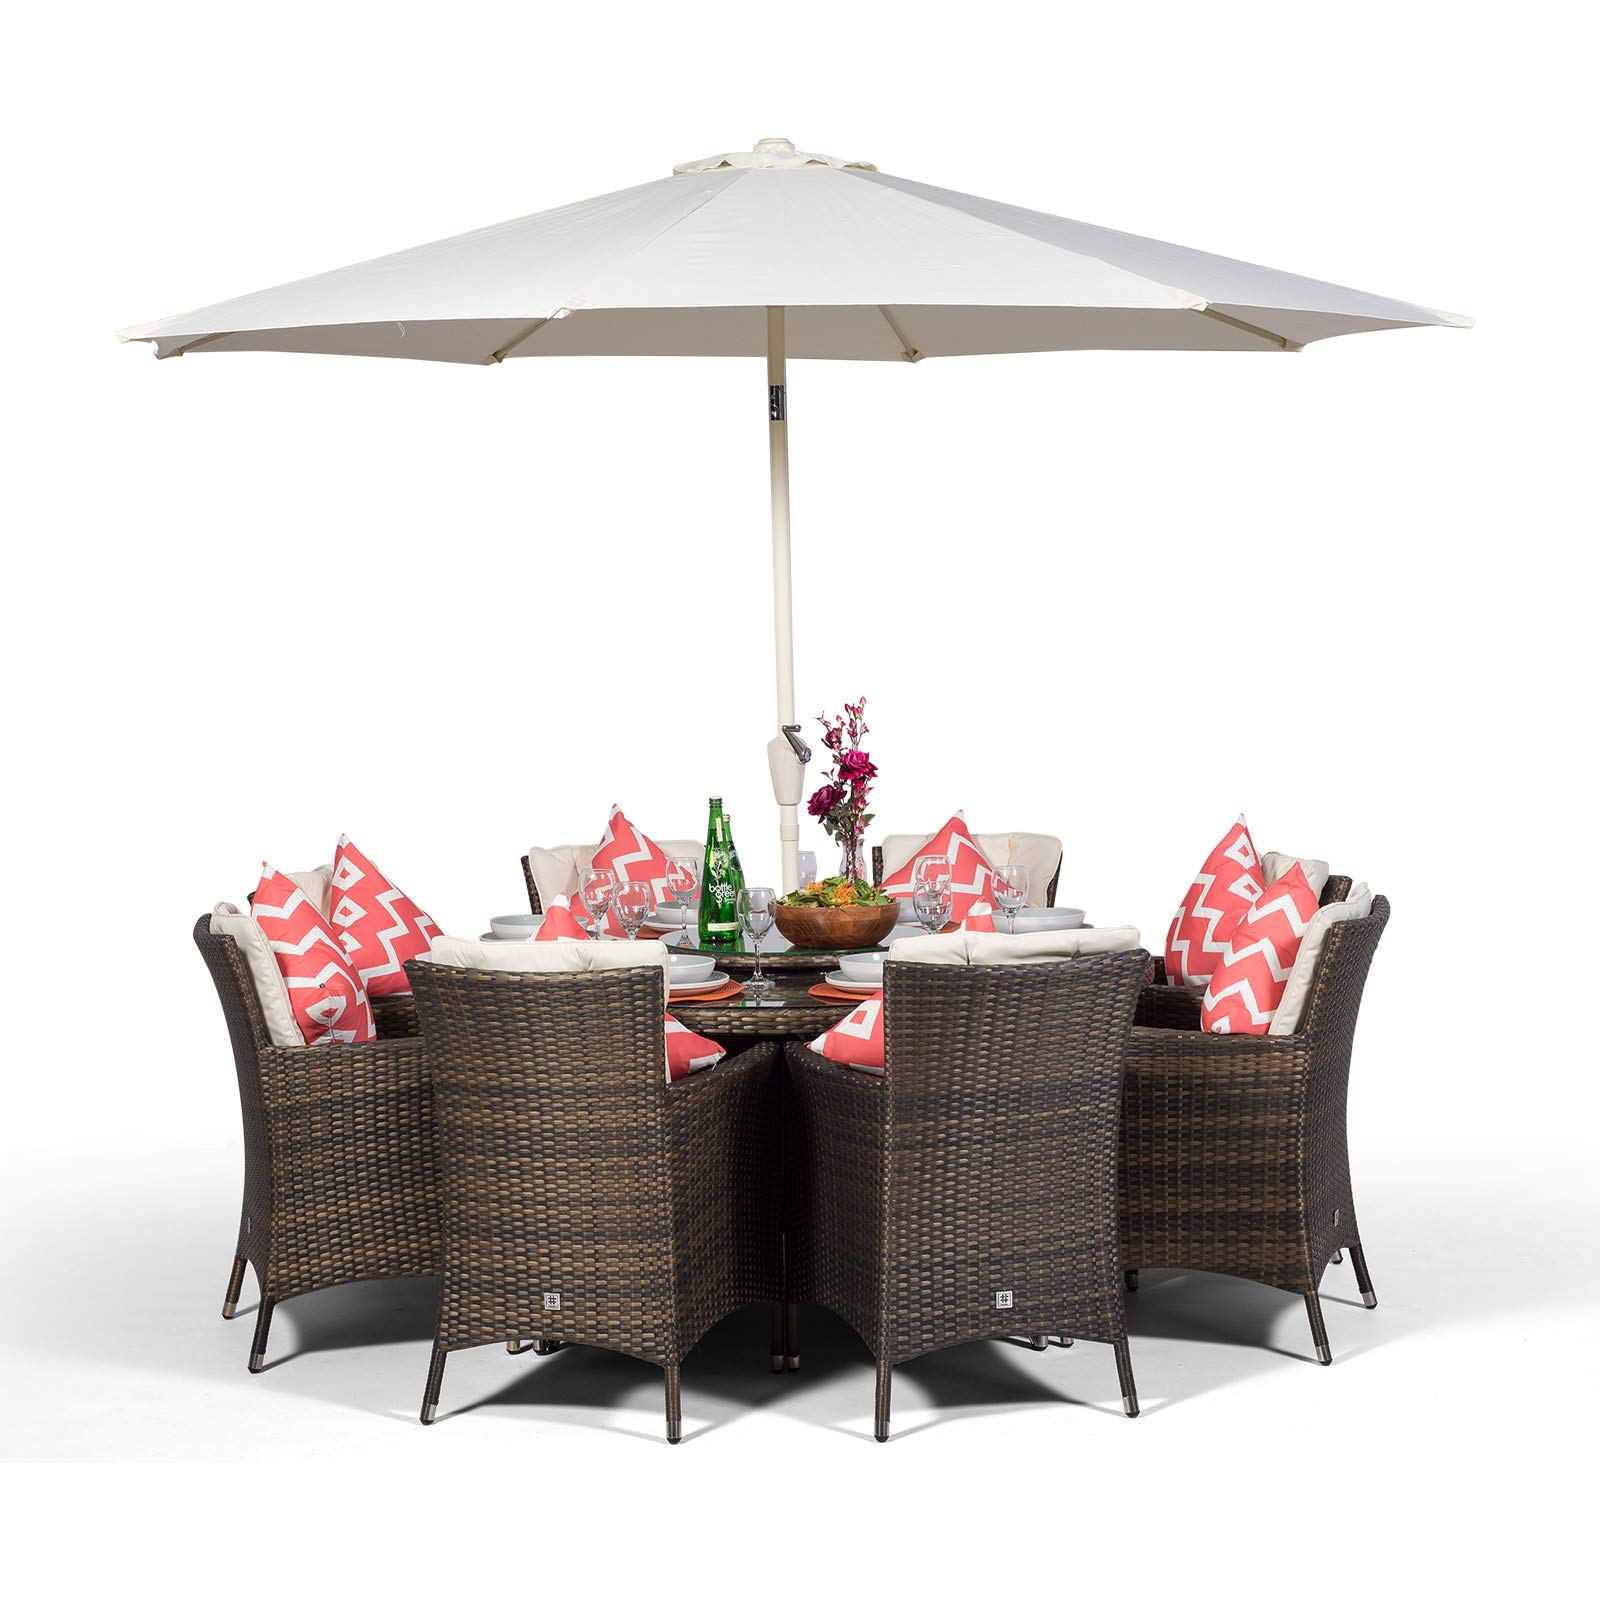 Outstanding Savannah Rattan Dining Set Round 8 Seater Brown Rattan Dining Set Outdoor Poly Rattan Garden Table Chairs Set Patio Conservatory Wicker Garden Onthecornerstone Fun Painted Chair Ideas Images Onthecornerstoneorg